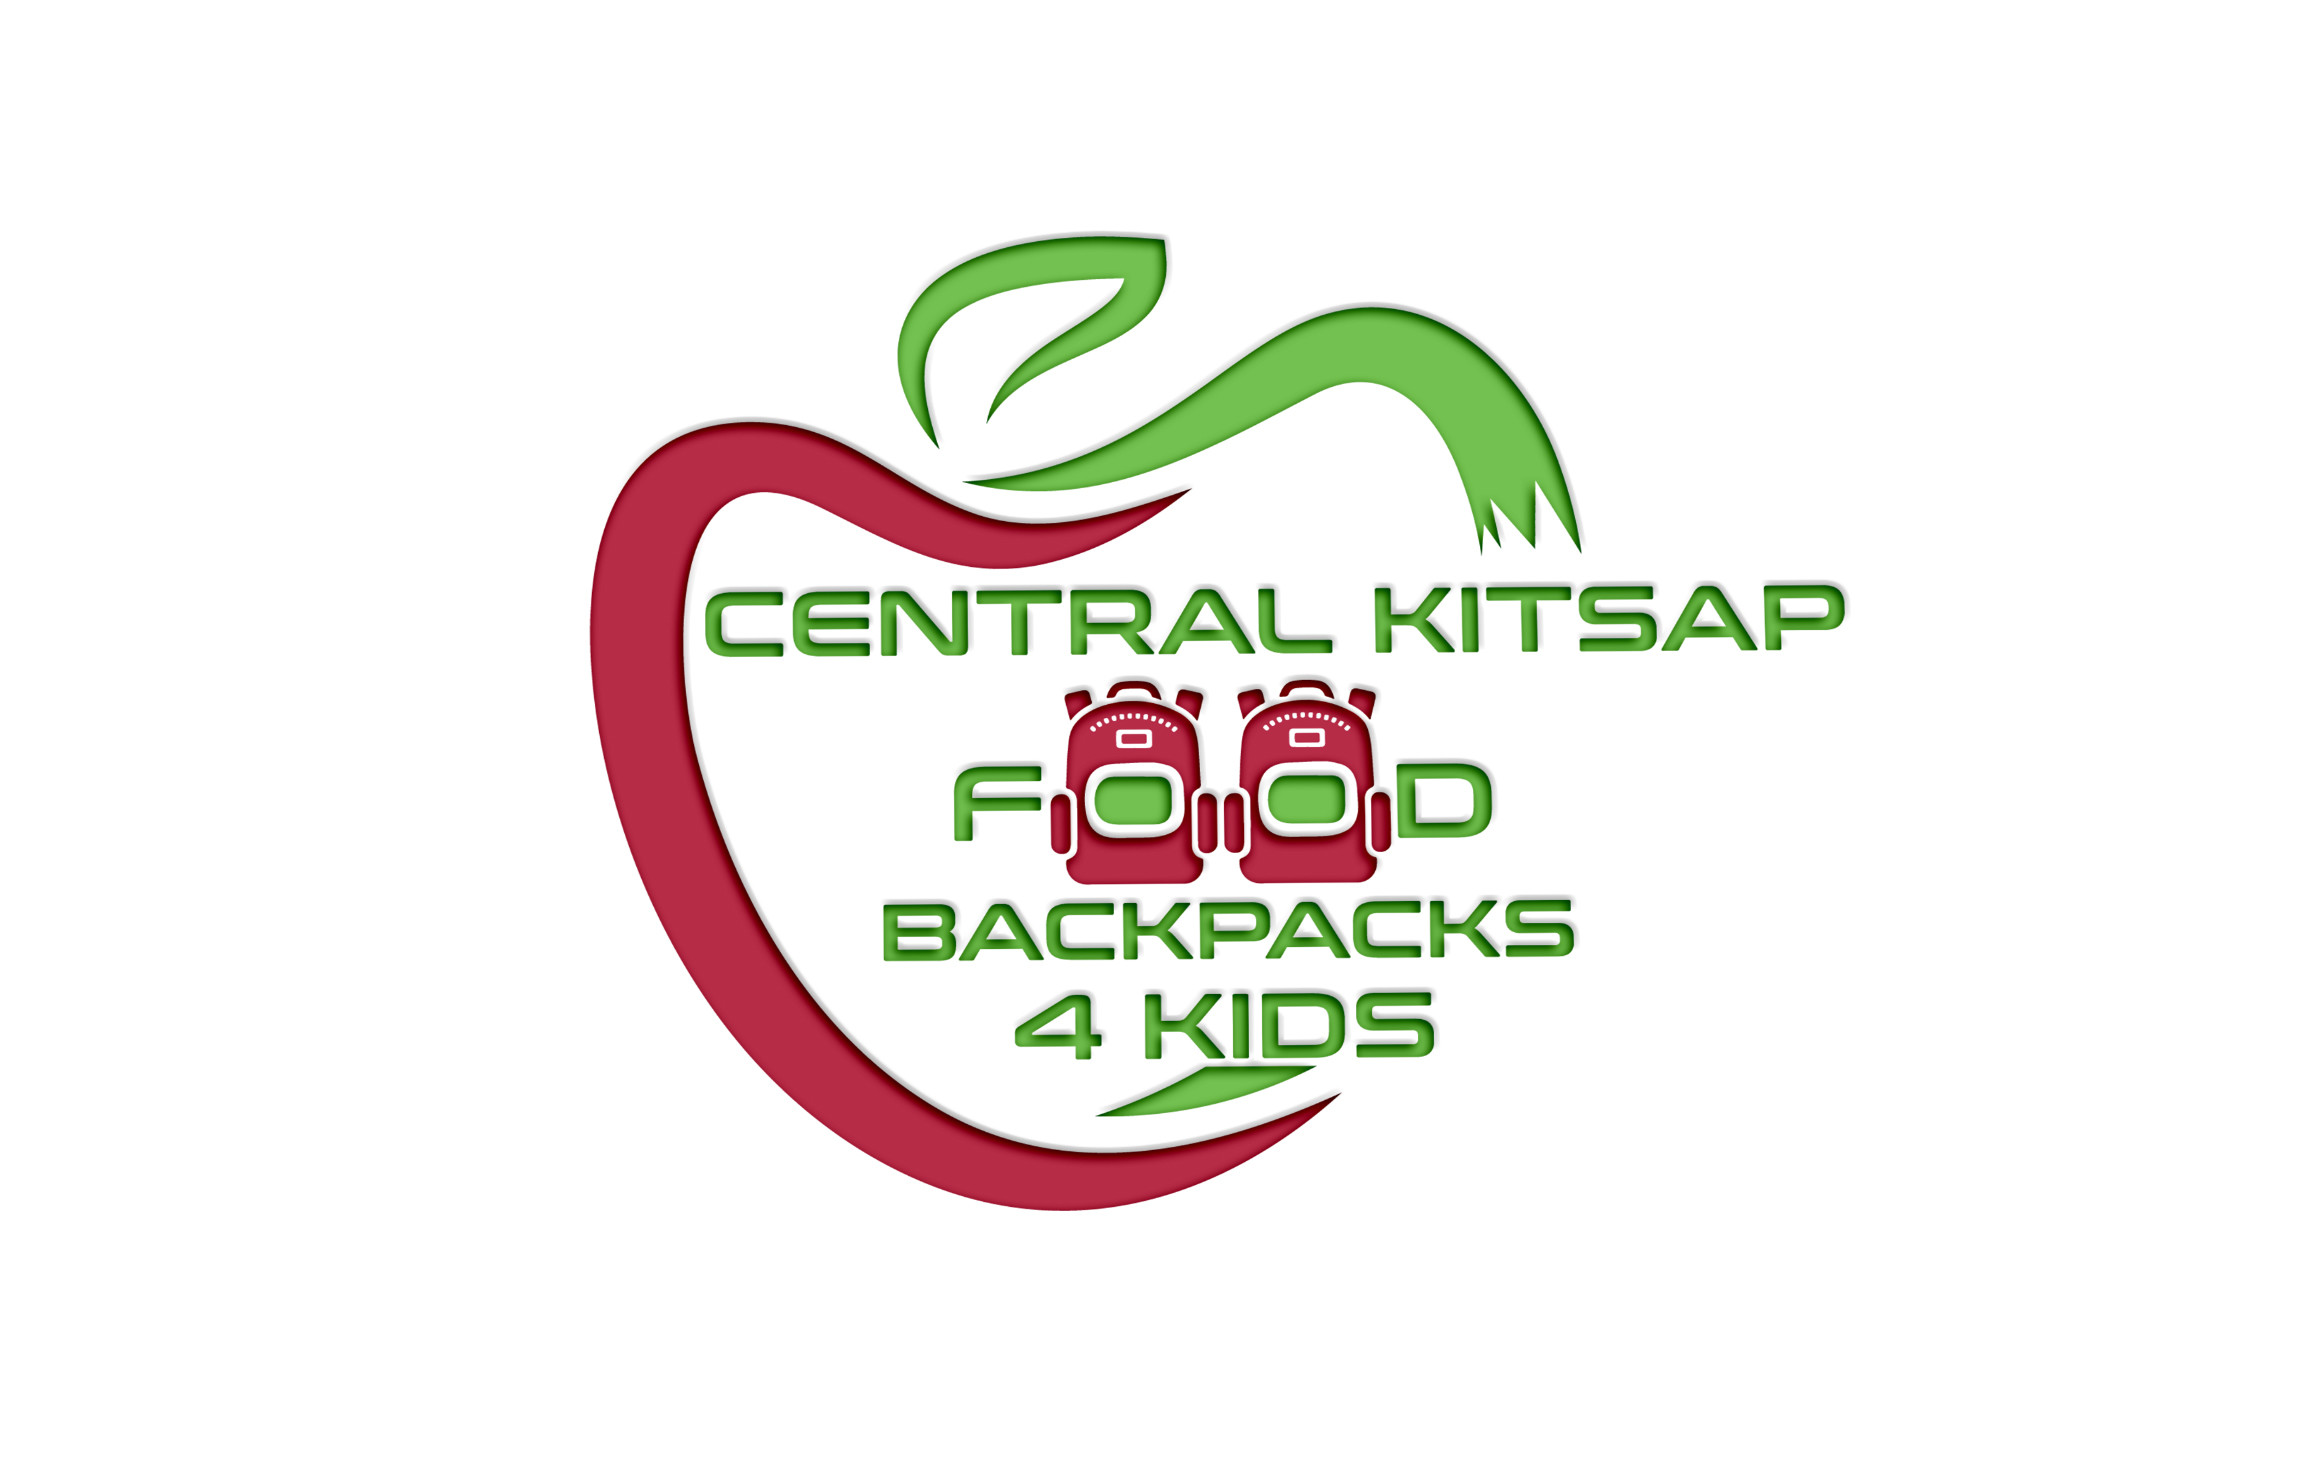 Central Kitsap Food Backpacks 4 Kids